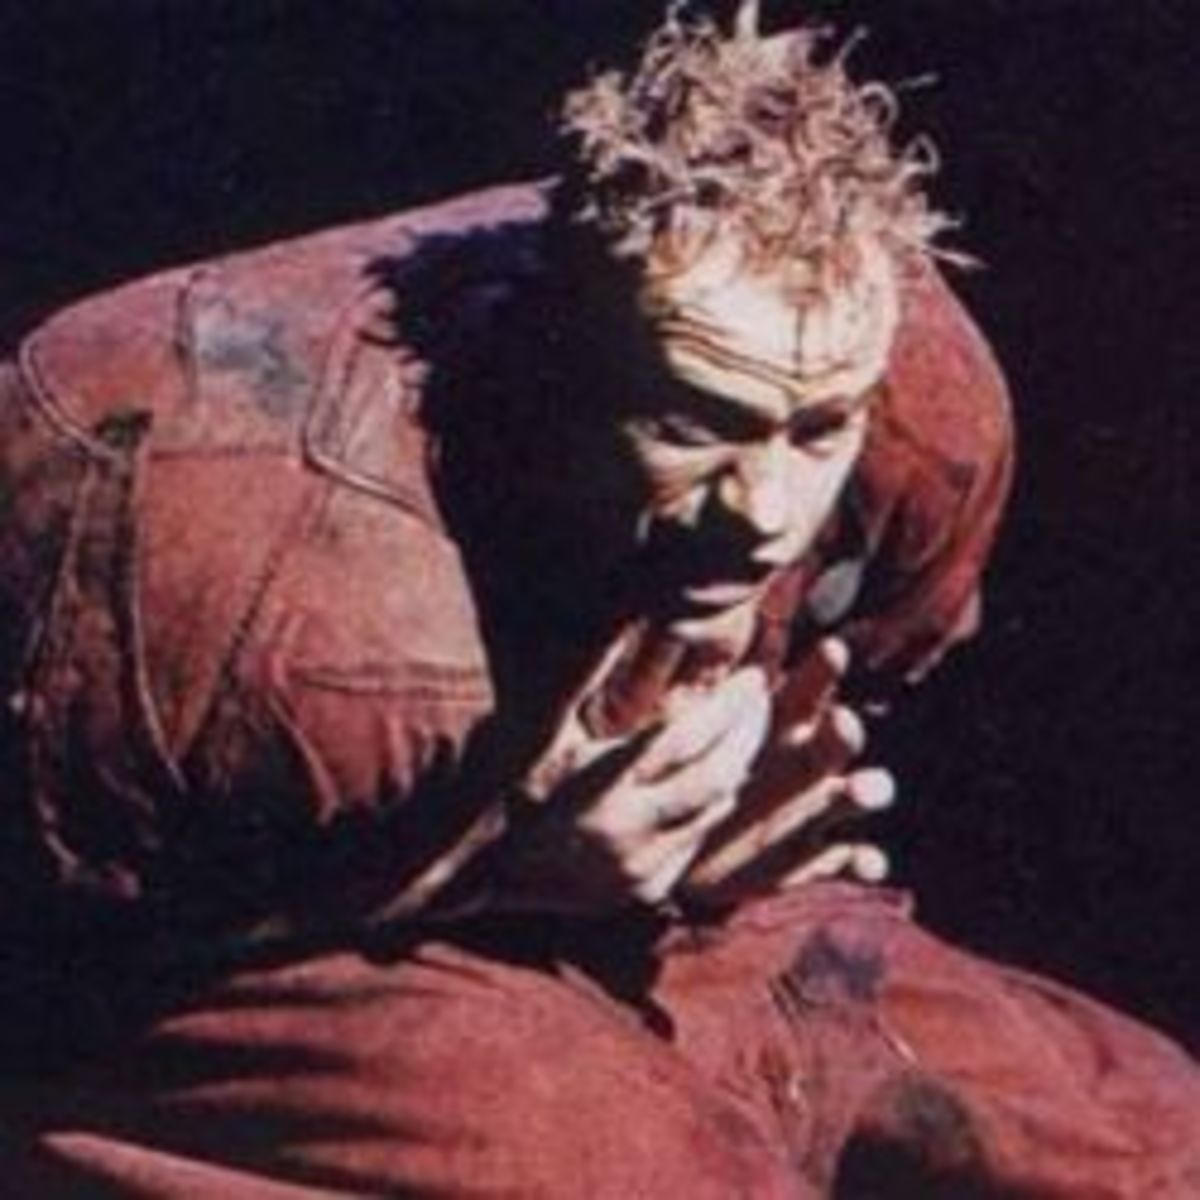 Garou as Quasimodo